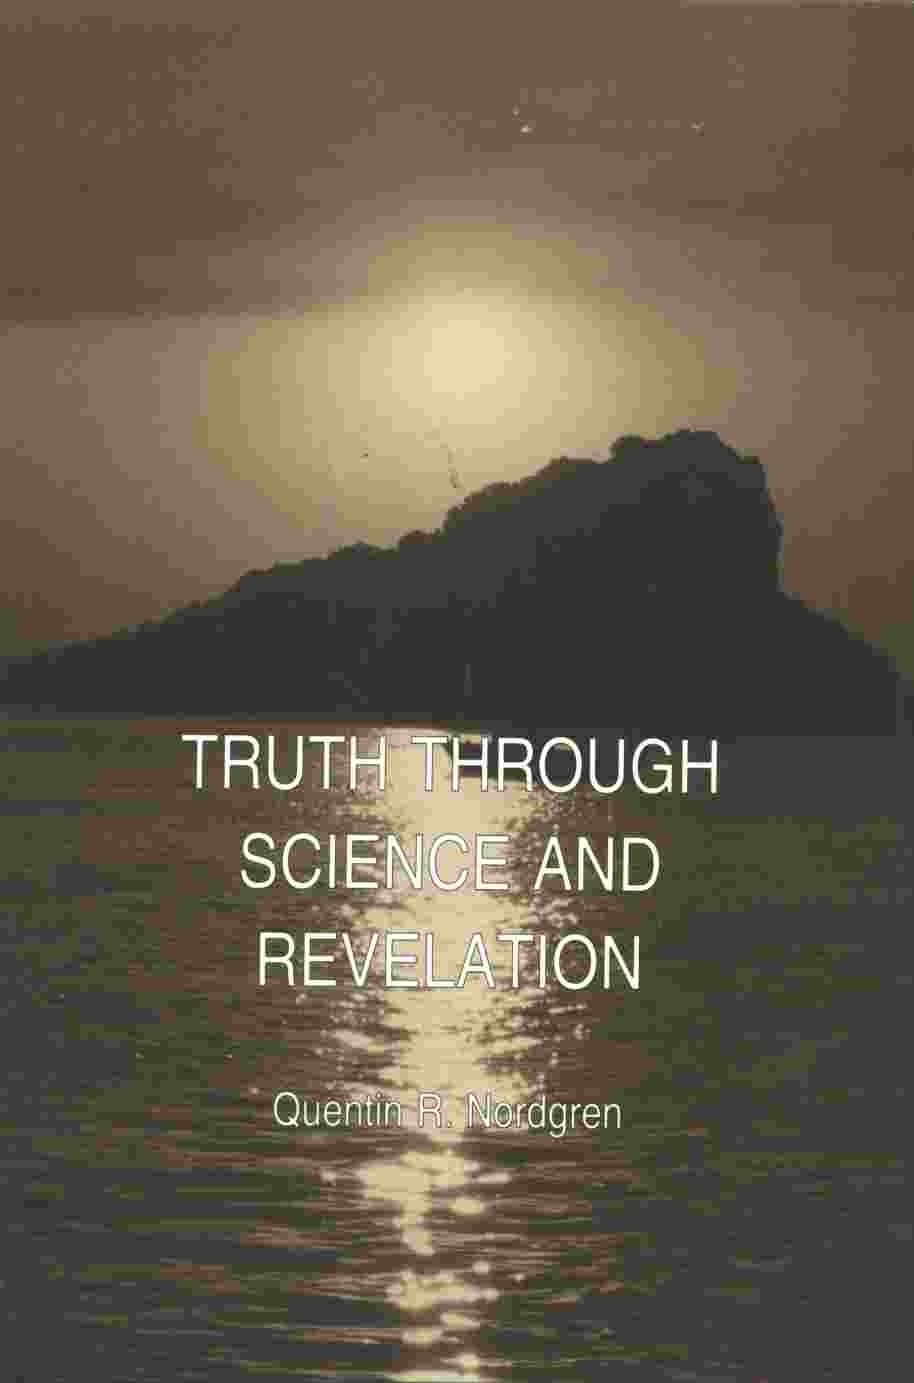 TRUTH THROUGH SCIENCE AND REVELATION, Nordgren, Quentin R